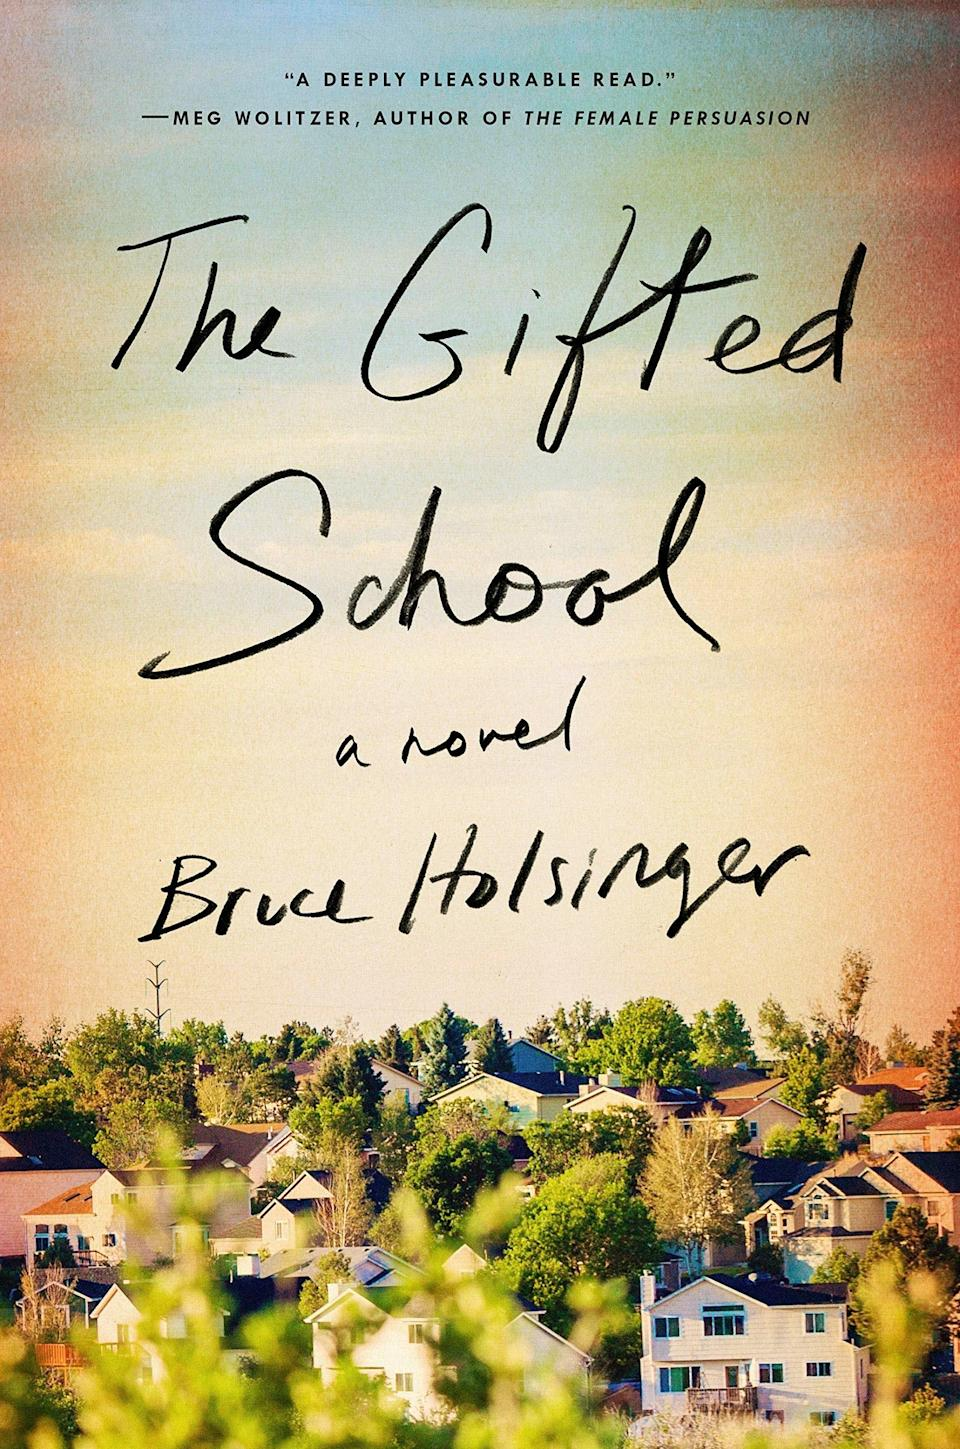 Admit it: You were just as captivated by the college-admissions scandal as the rest of us. While the drama around Operation Varsity Blues may have died down, <em>The Gifted School</em> is a just-as-juicy, fictional account of parents who will do <em>anything</em> to get their children an elite education. The novel opens with the founding of a new application-only magnet school in a small town and follows four close friends—and their parents—as they battle it out for those few coveted spots.